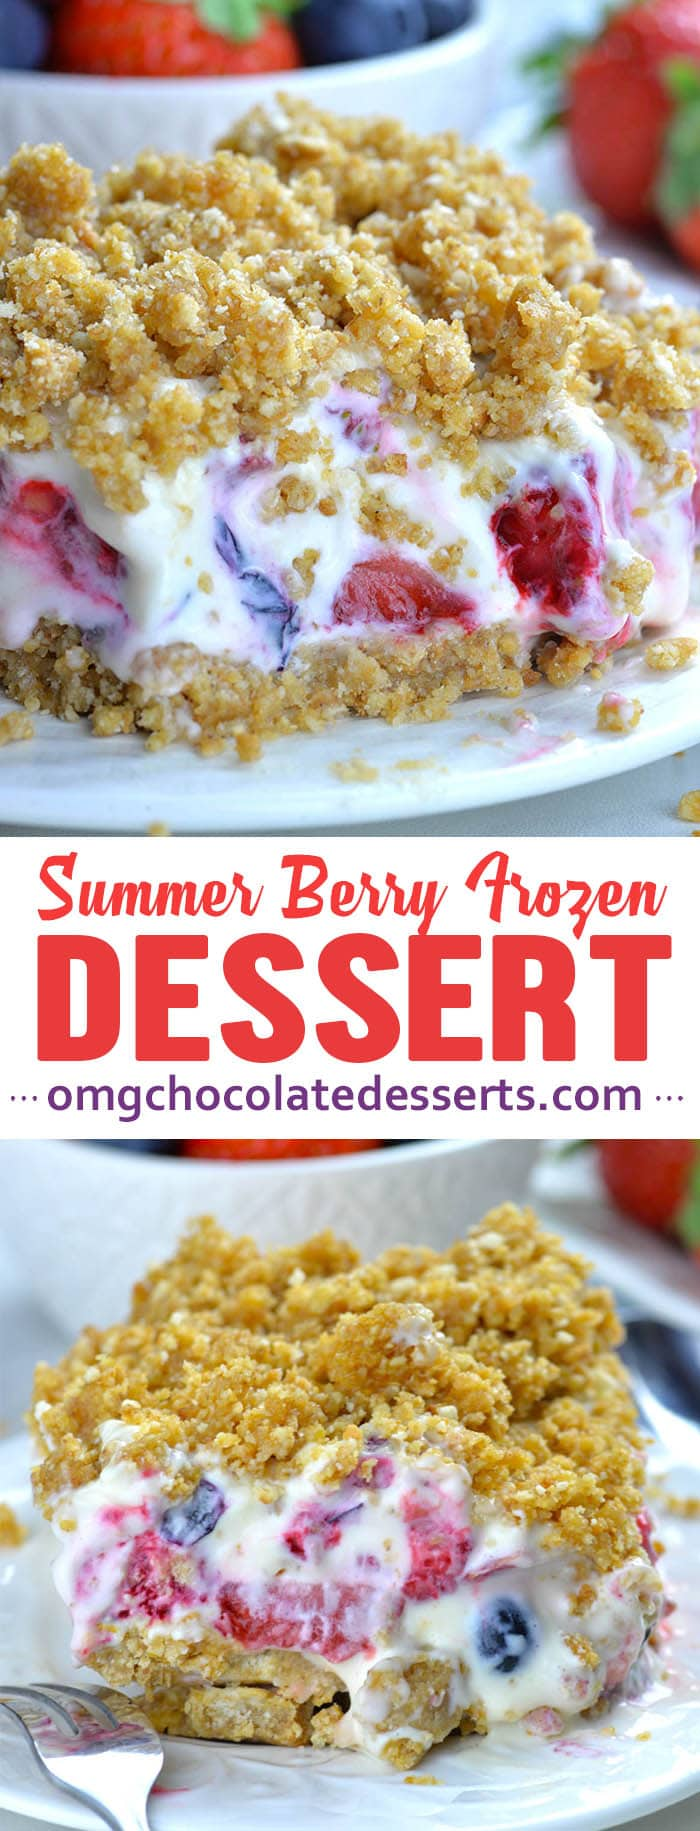 Summer Berry Frozen Dessert is easy no bake recipe for refreshing summer treat. It's delicious, creamy, no bake cheesecake with mix of fresh summer berries, graham cracker crust and crunchy crumb topping.